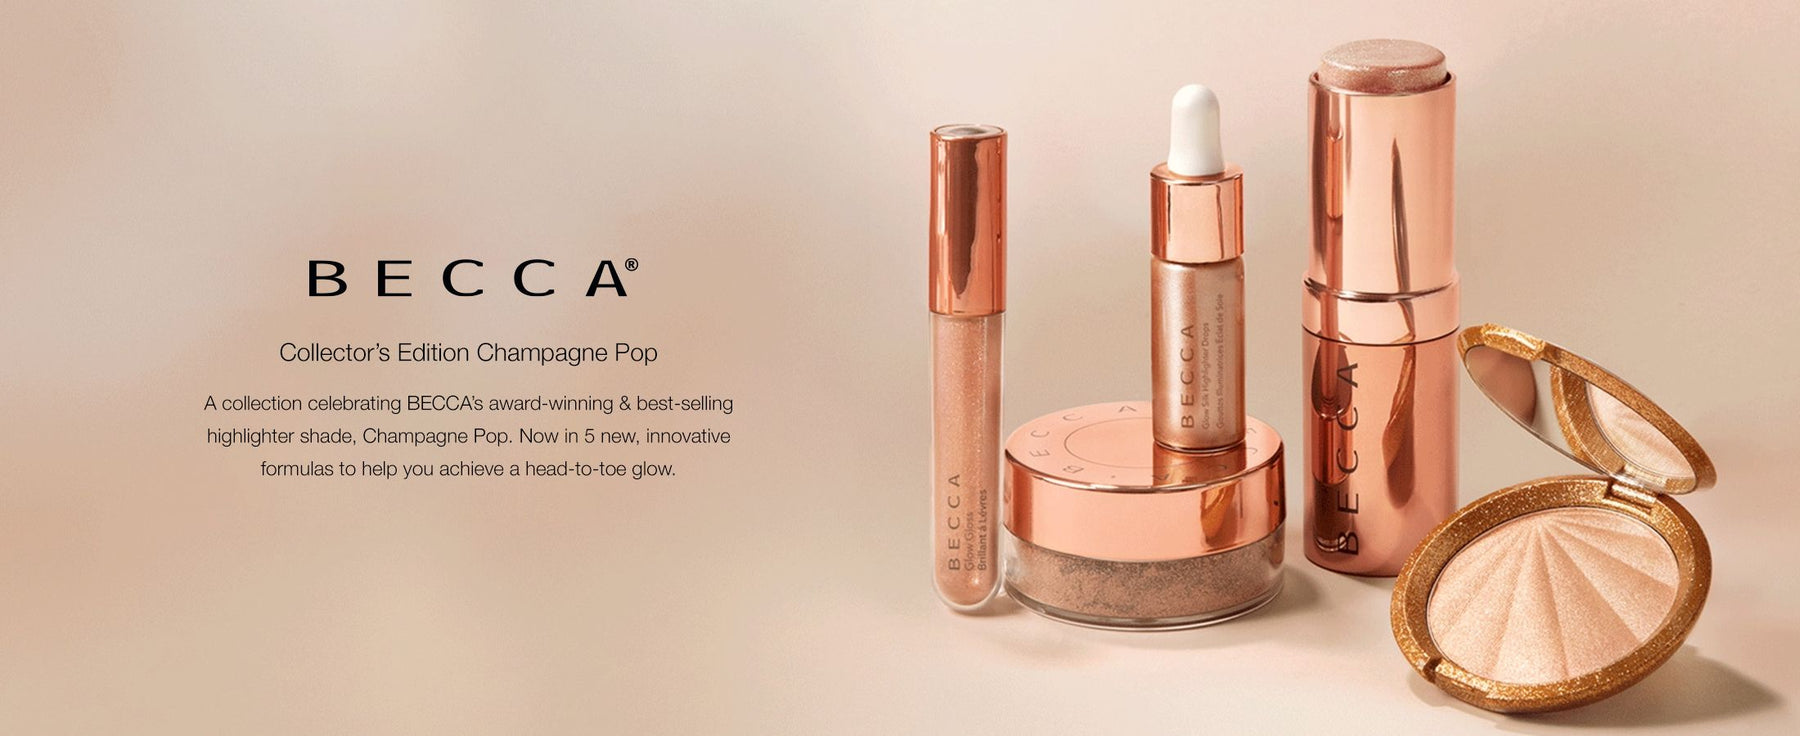 BECCA Collector's Edition Champagne Pop. A collection celebrating BECCA's award-winning & best-selling highlighter shade, Champagne Pop. Now in 5 new, innovative formulas to help you achieve a head-to-toe glow.